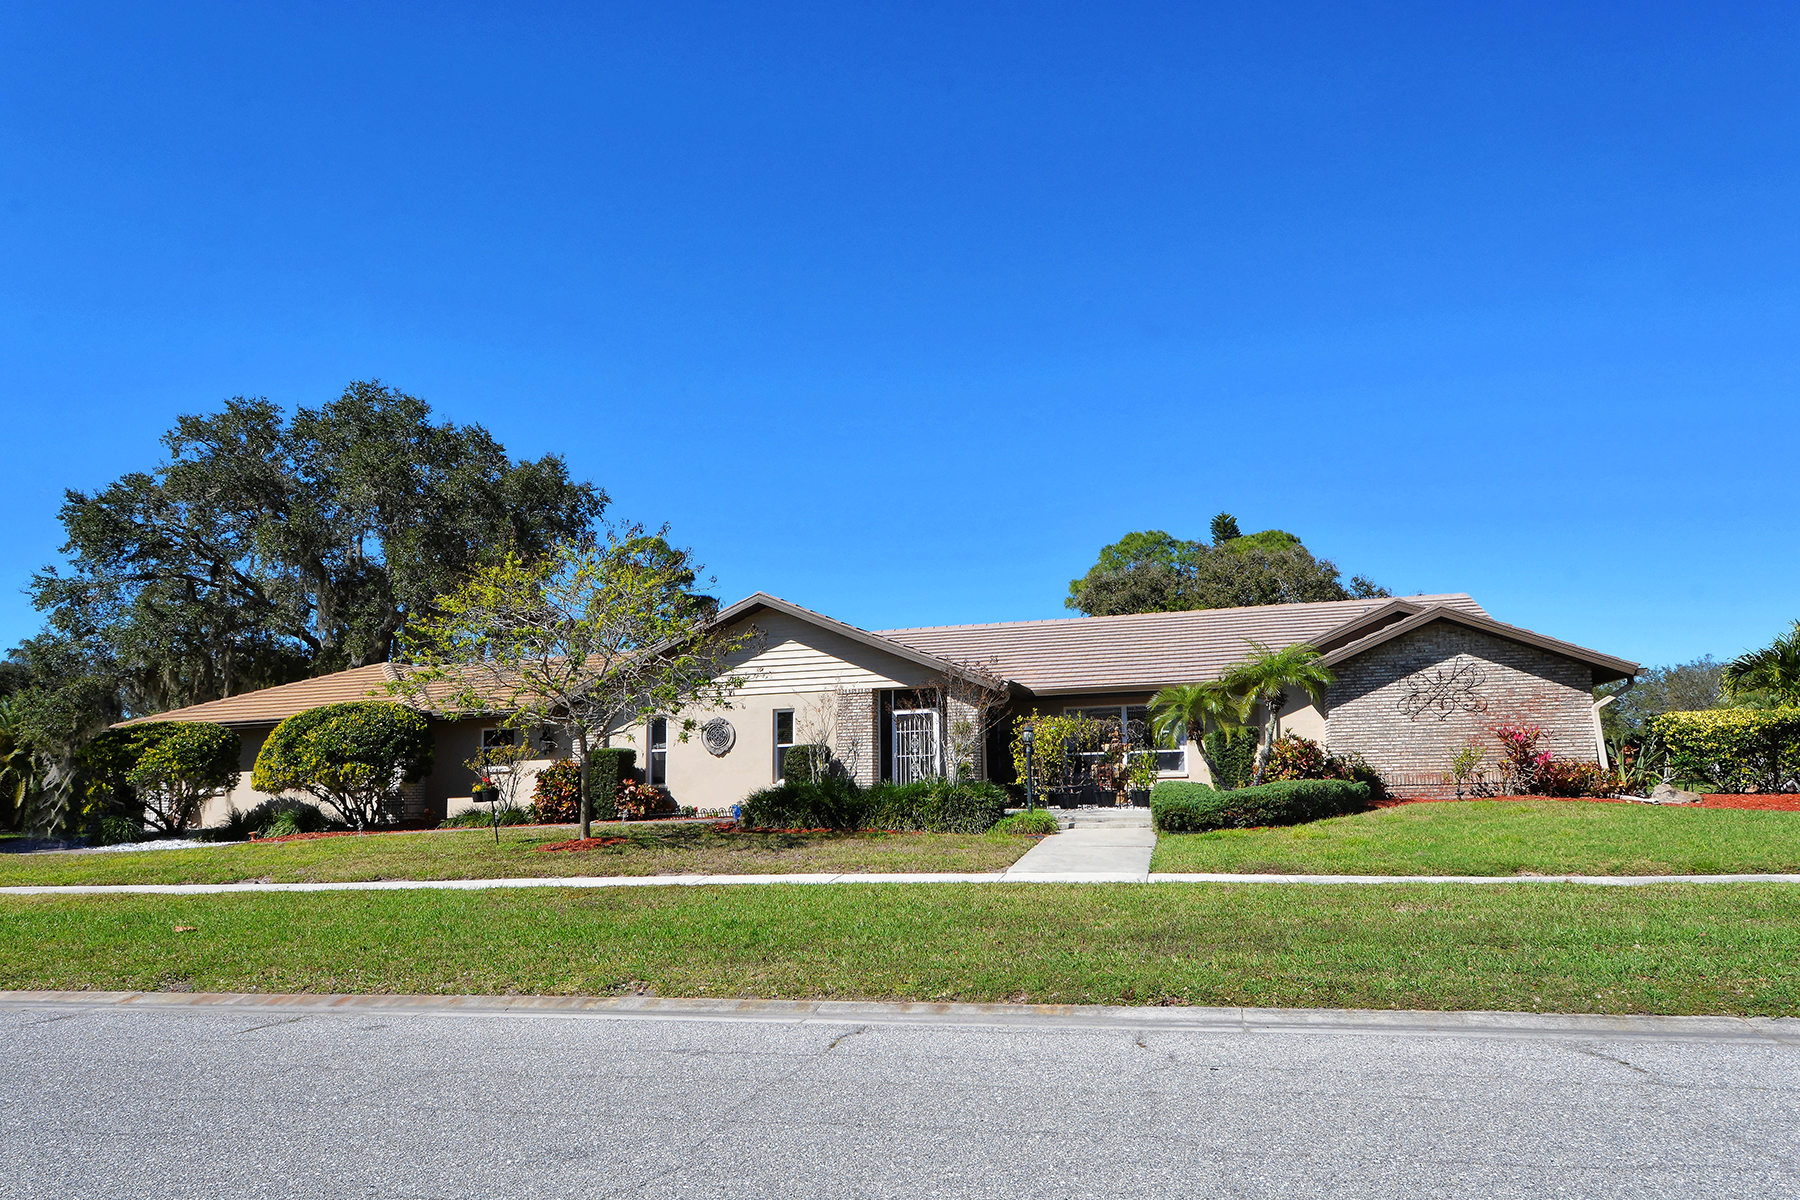 Single Family Home for Sale at SORRENTO WOODS 1105 Sorrento Woods Blvd Nokomis, Florida, 34275 United States